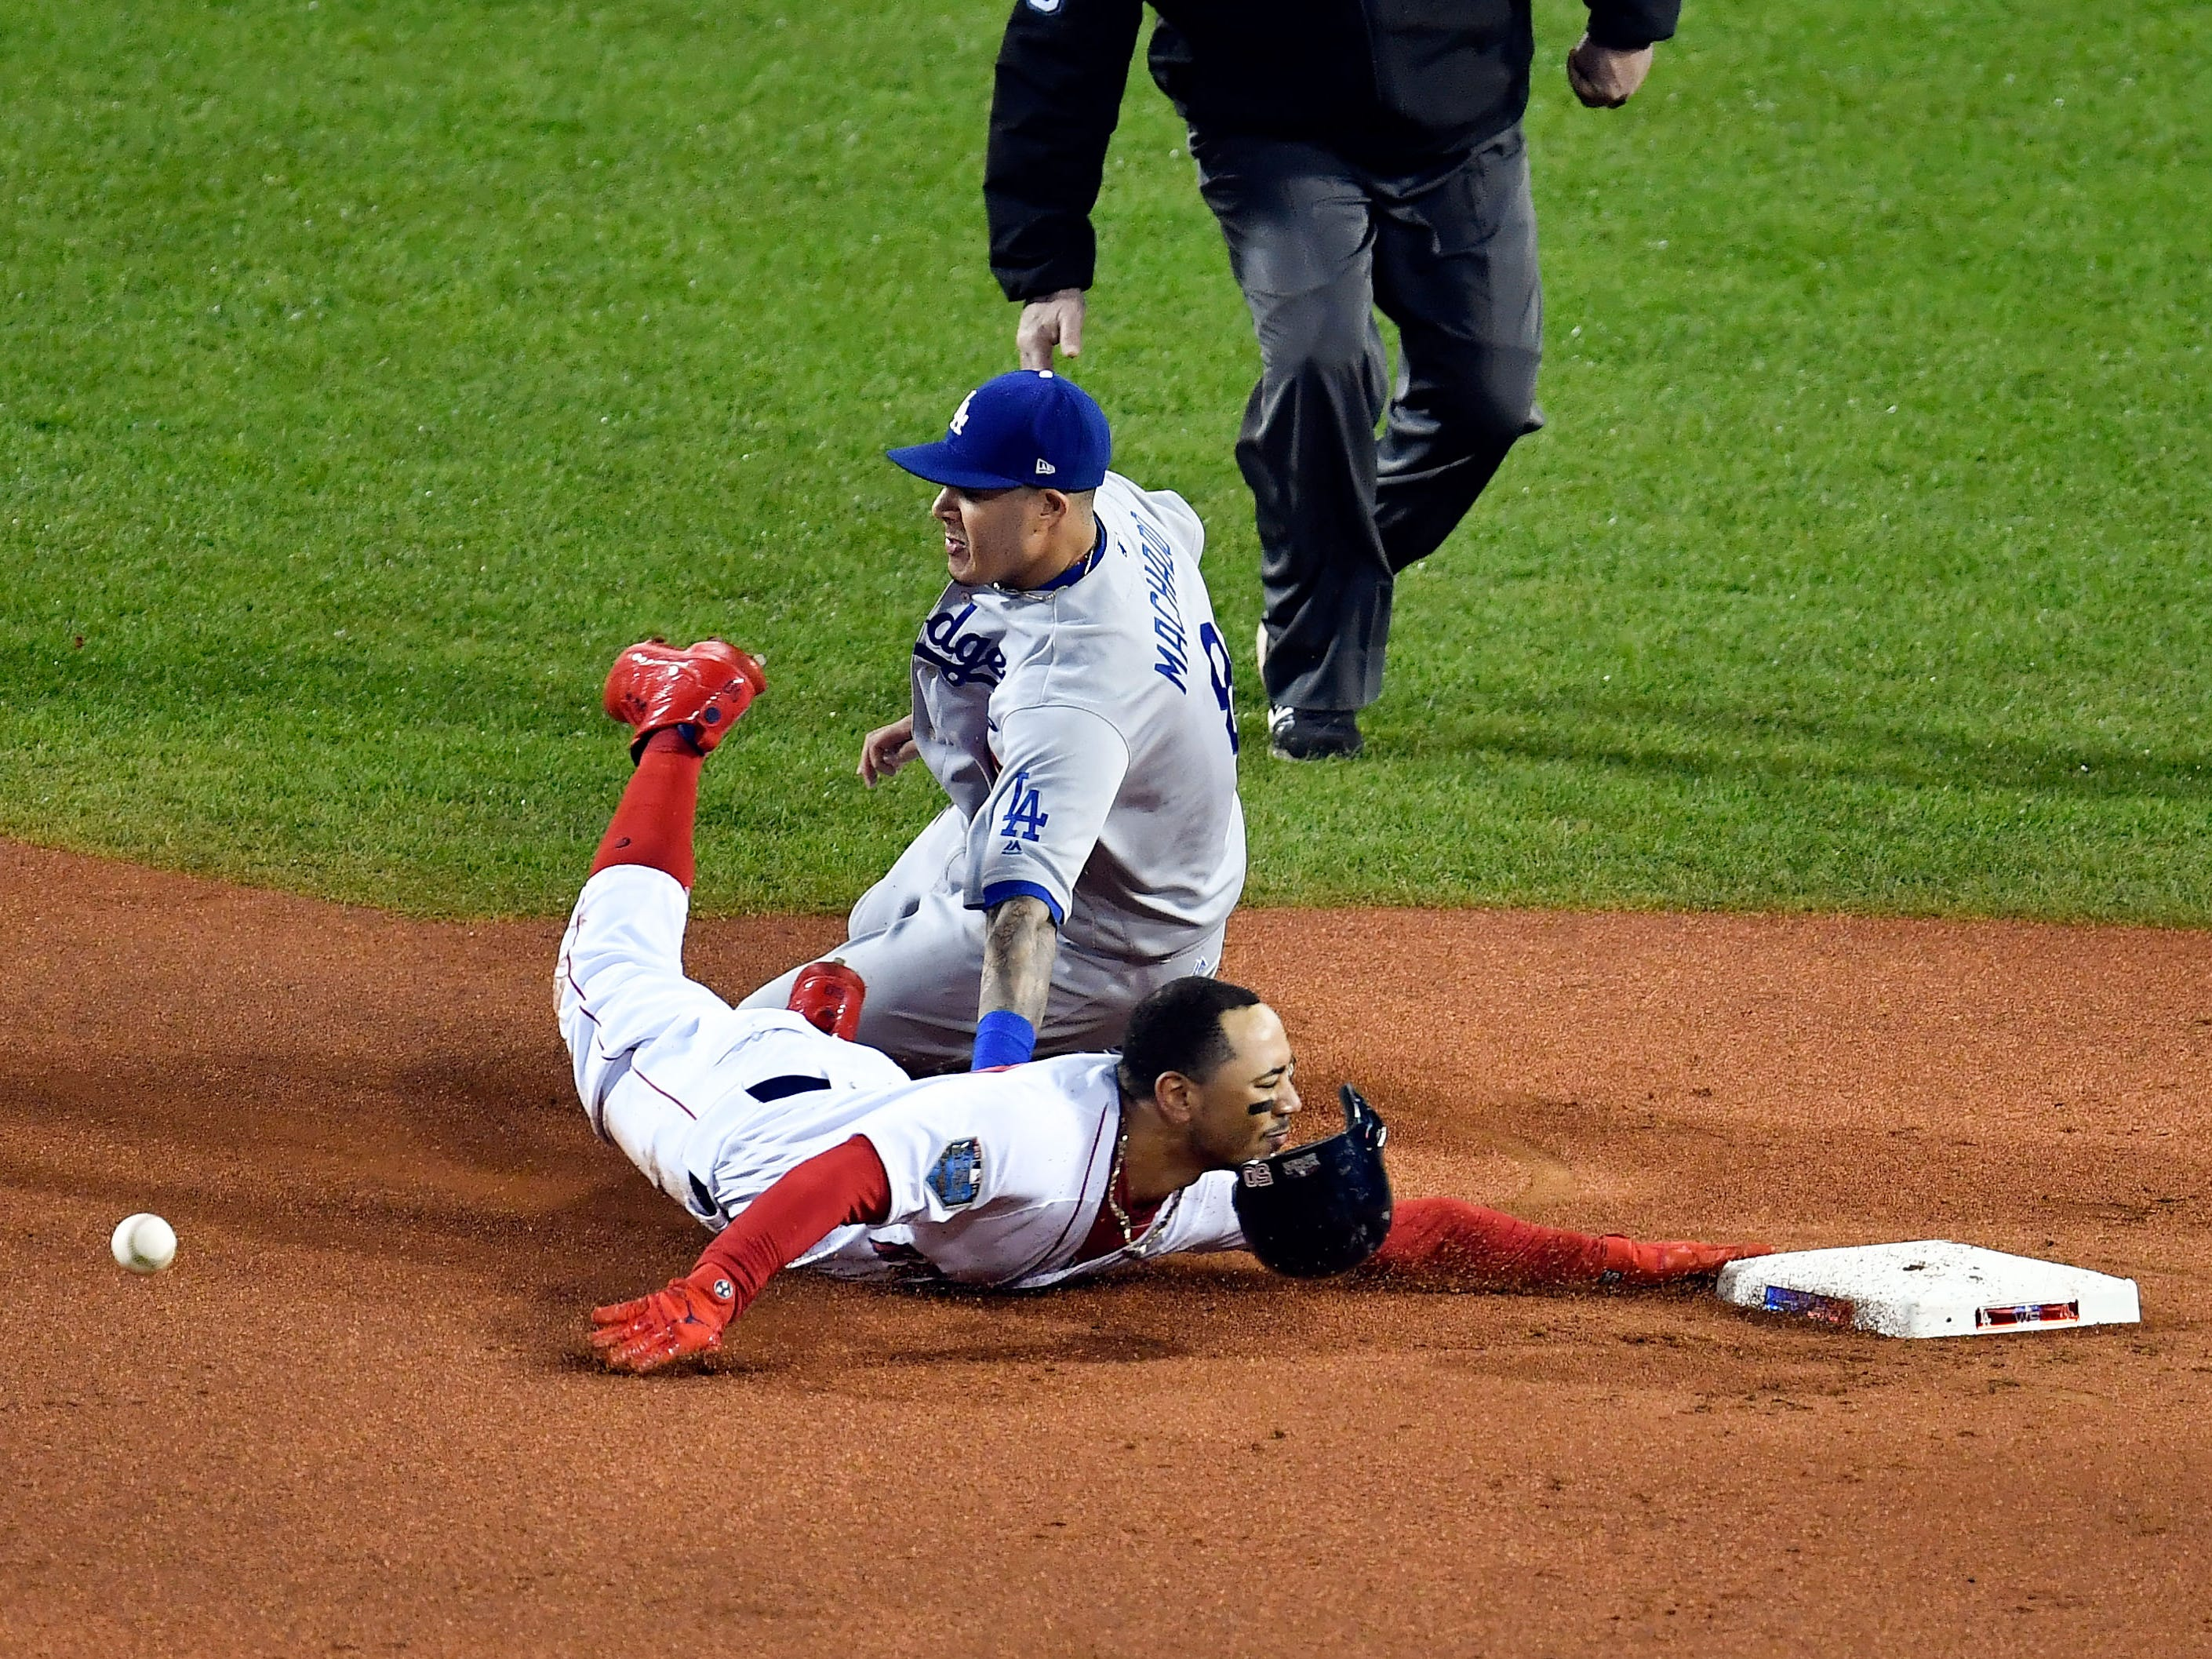 Game 1 at Fenway Park: Mookie Betts slides in safely to steal second base in the first inning.